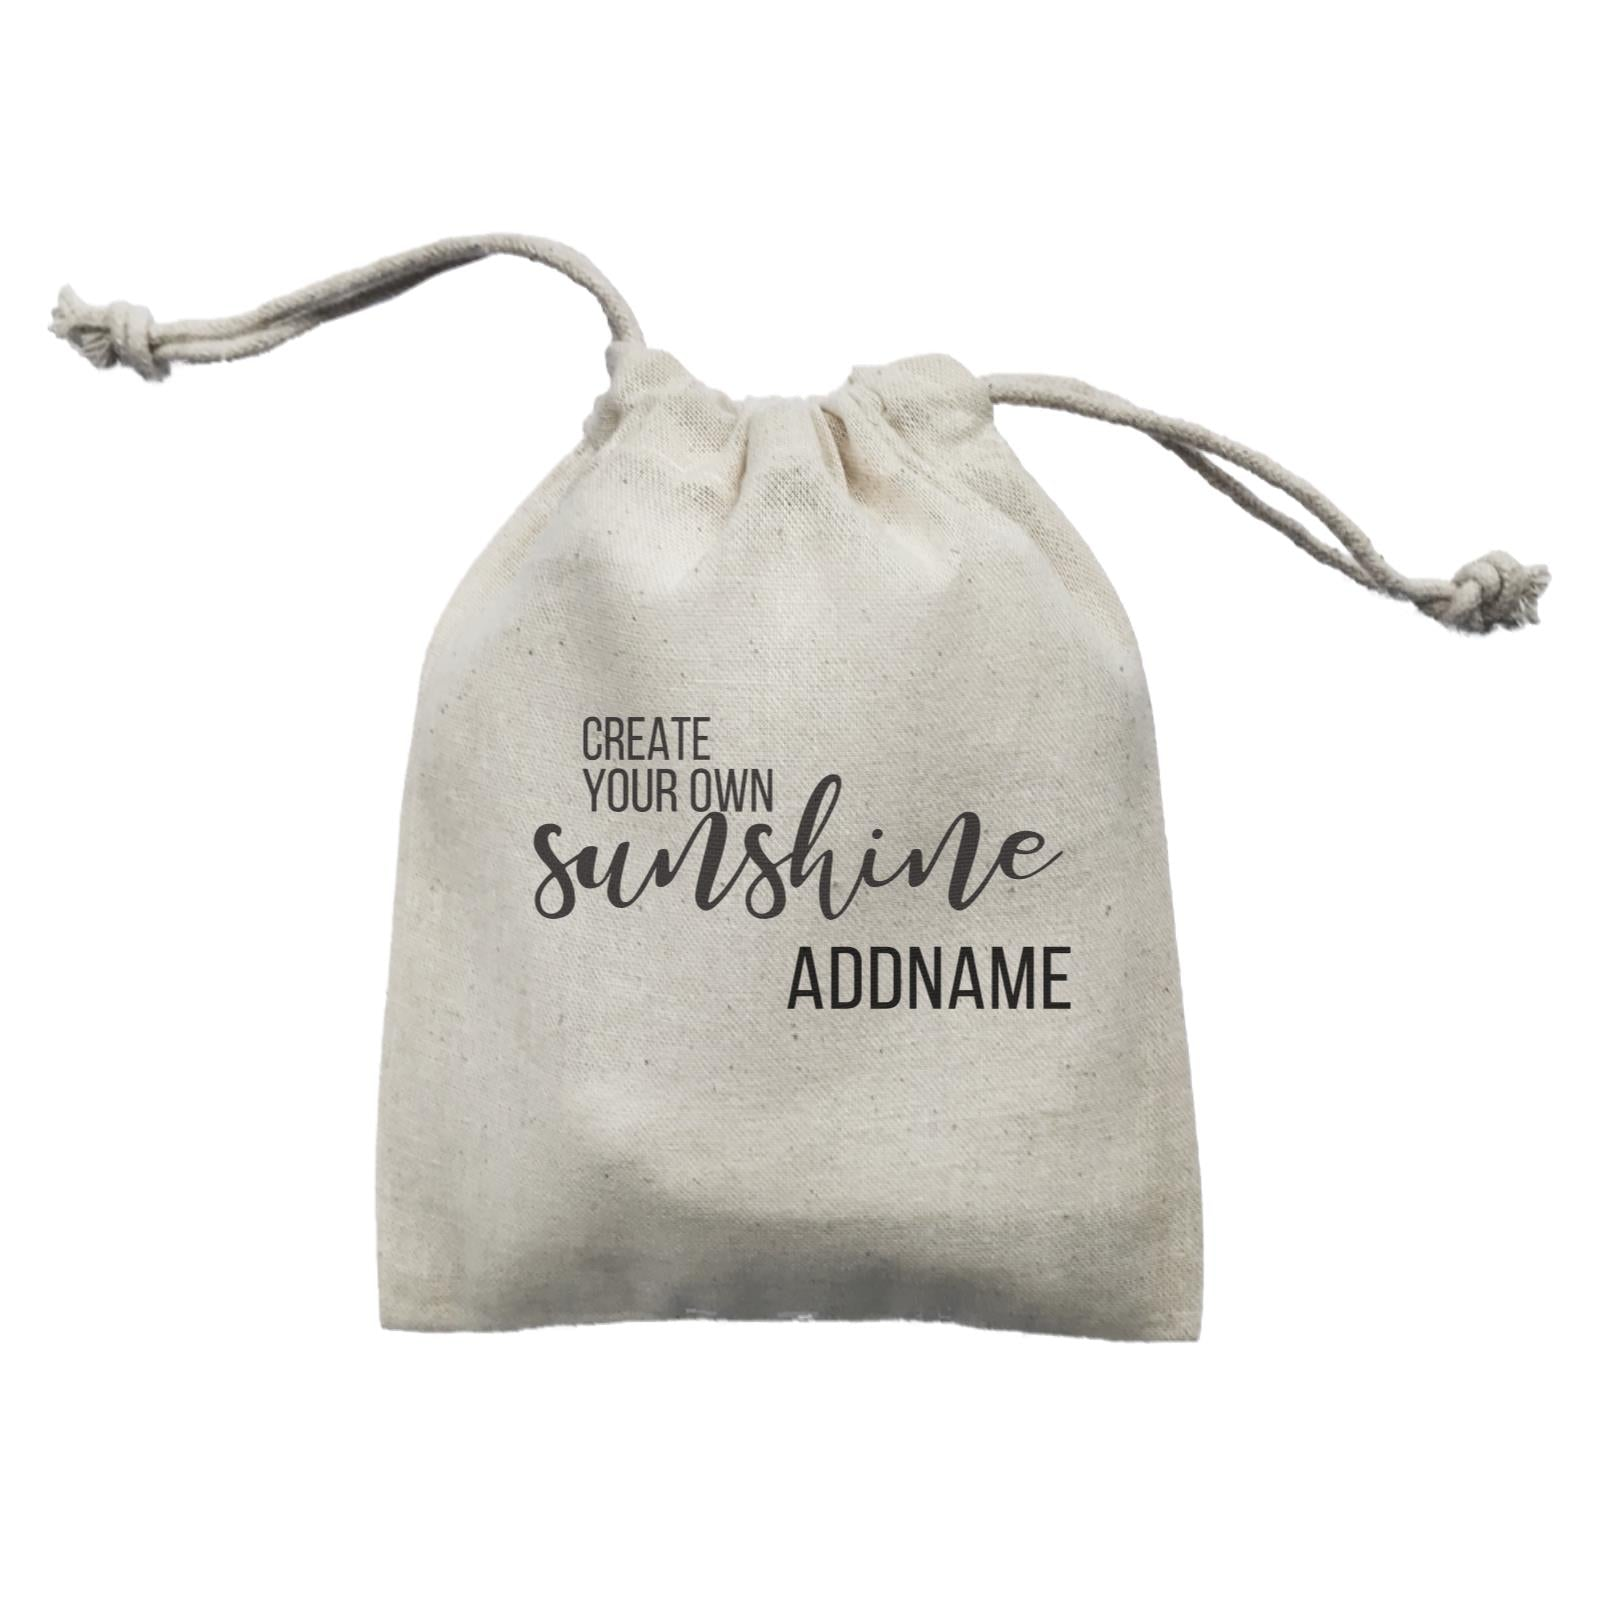 Inspiration Quotes Create Your Own Sunshine Addname Mini Accessories Mini Pouch